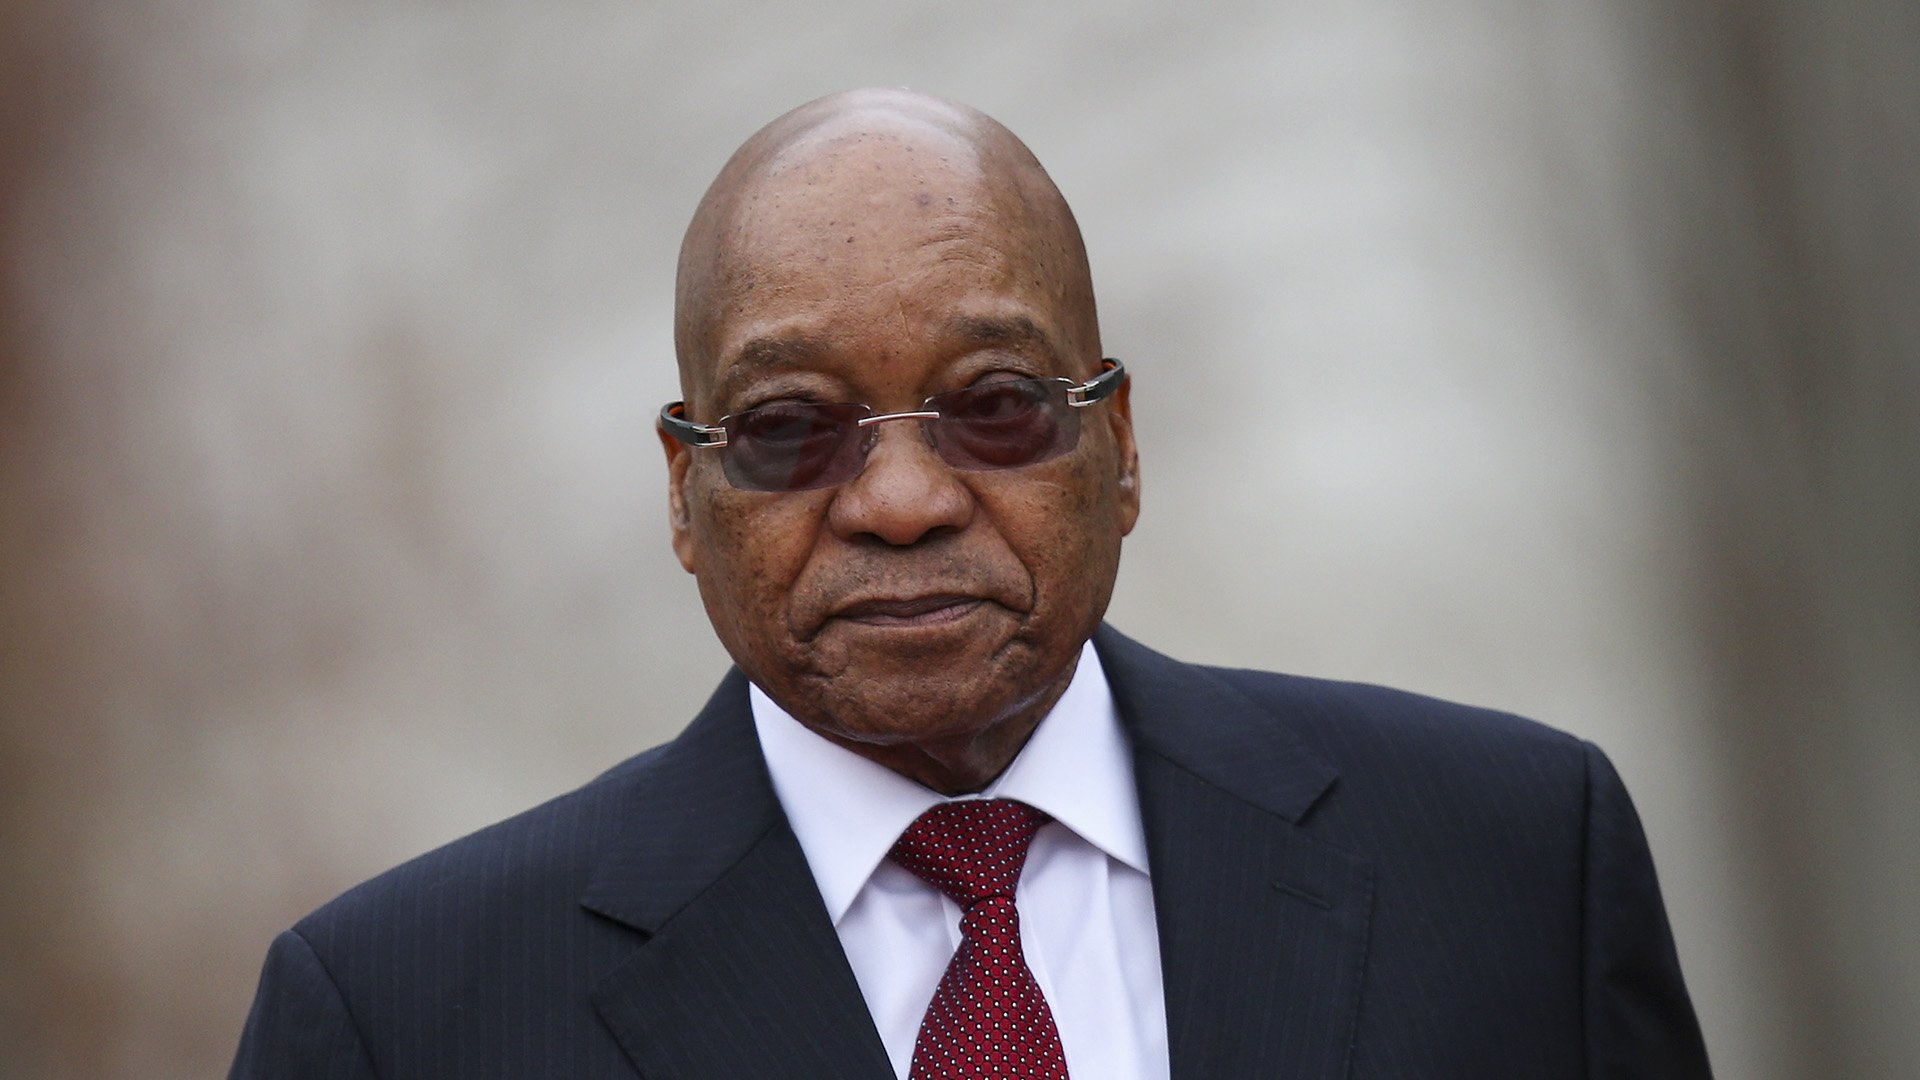 South Africa's Ex-President Zuma Refuses To Serve 15-Month Prison Sentence